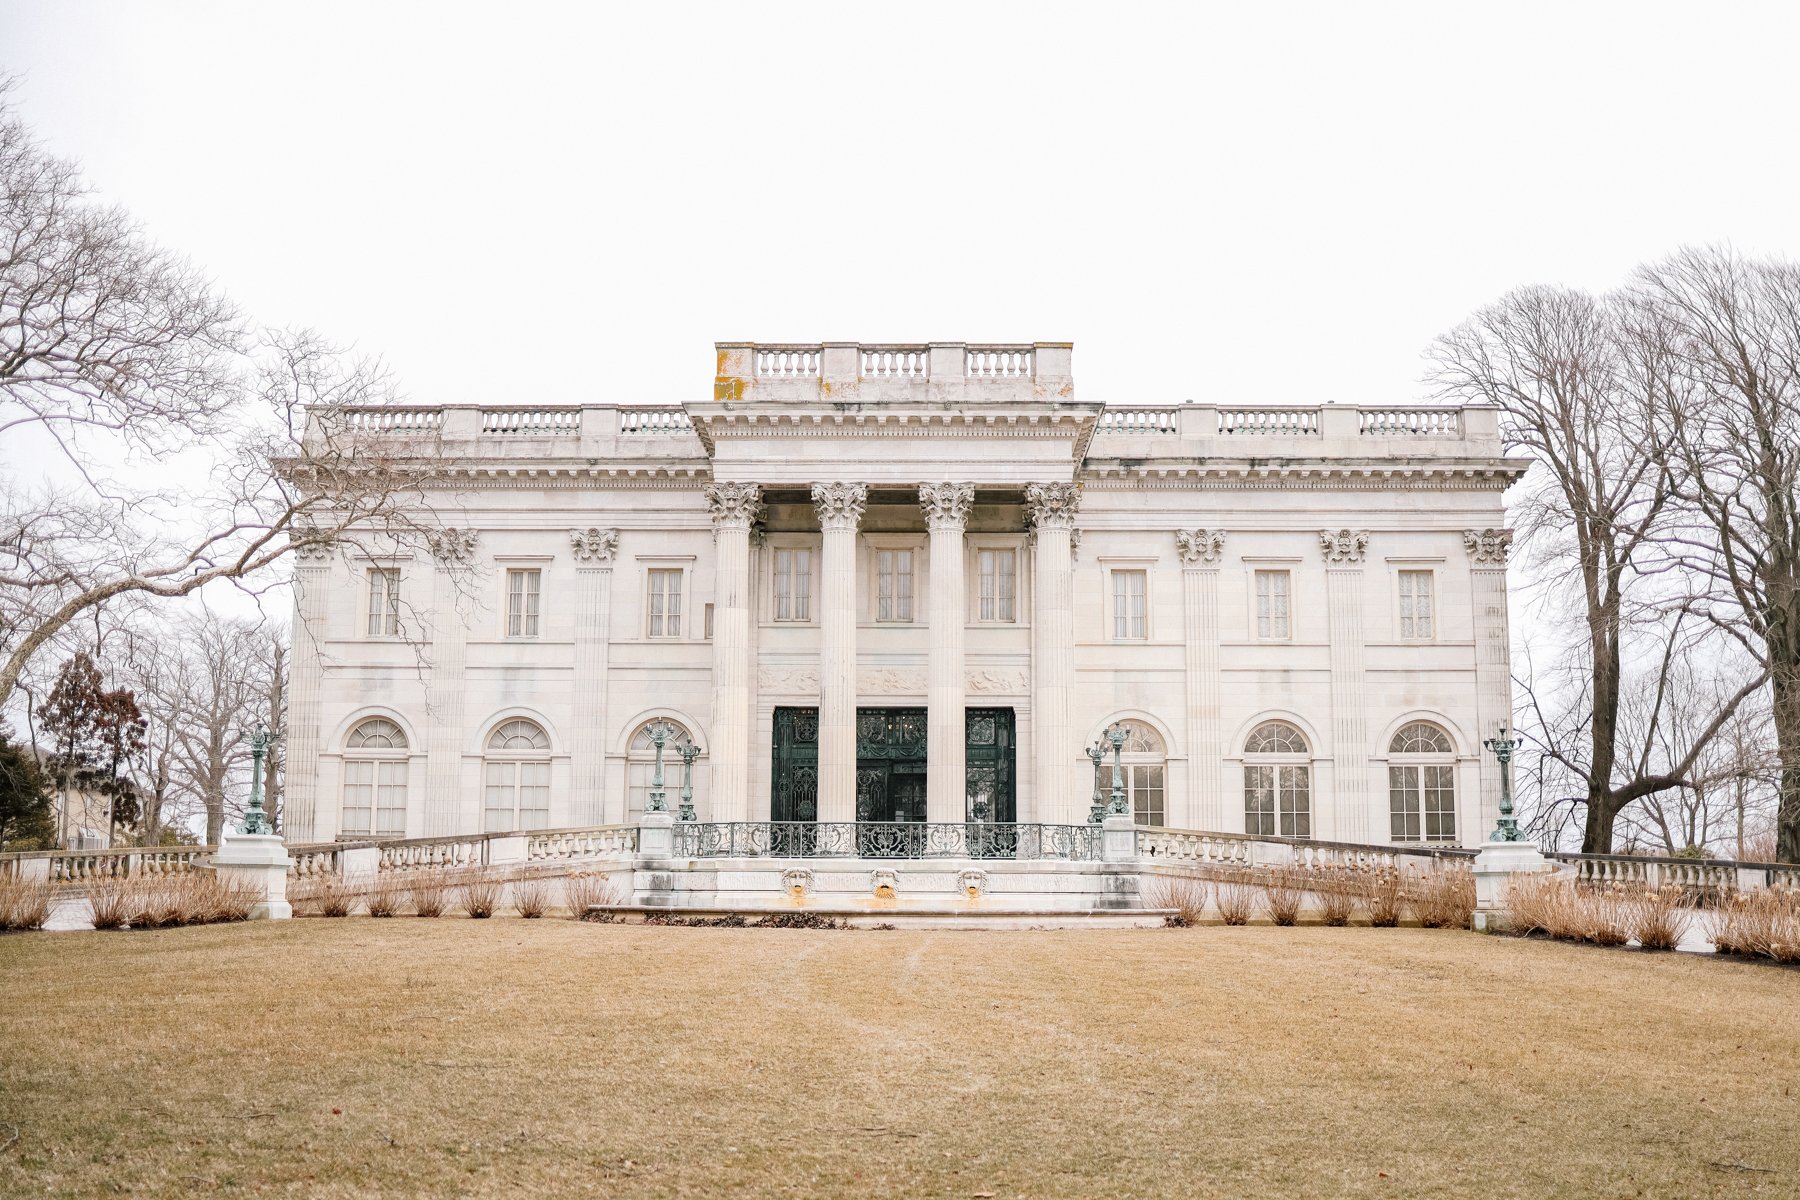 Day 2 in Newport, Rhode Island - Mansion tour: Marble House